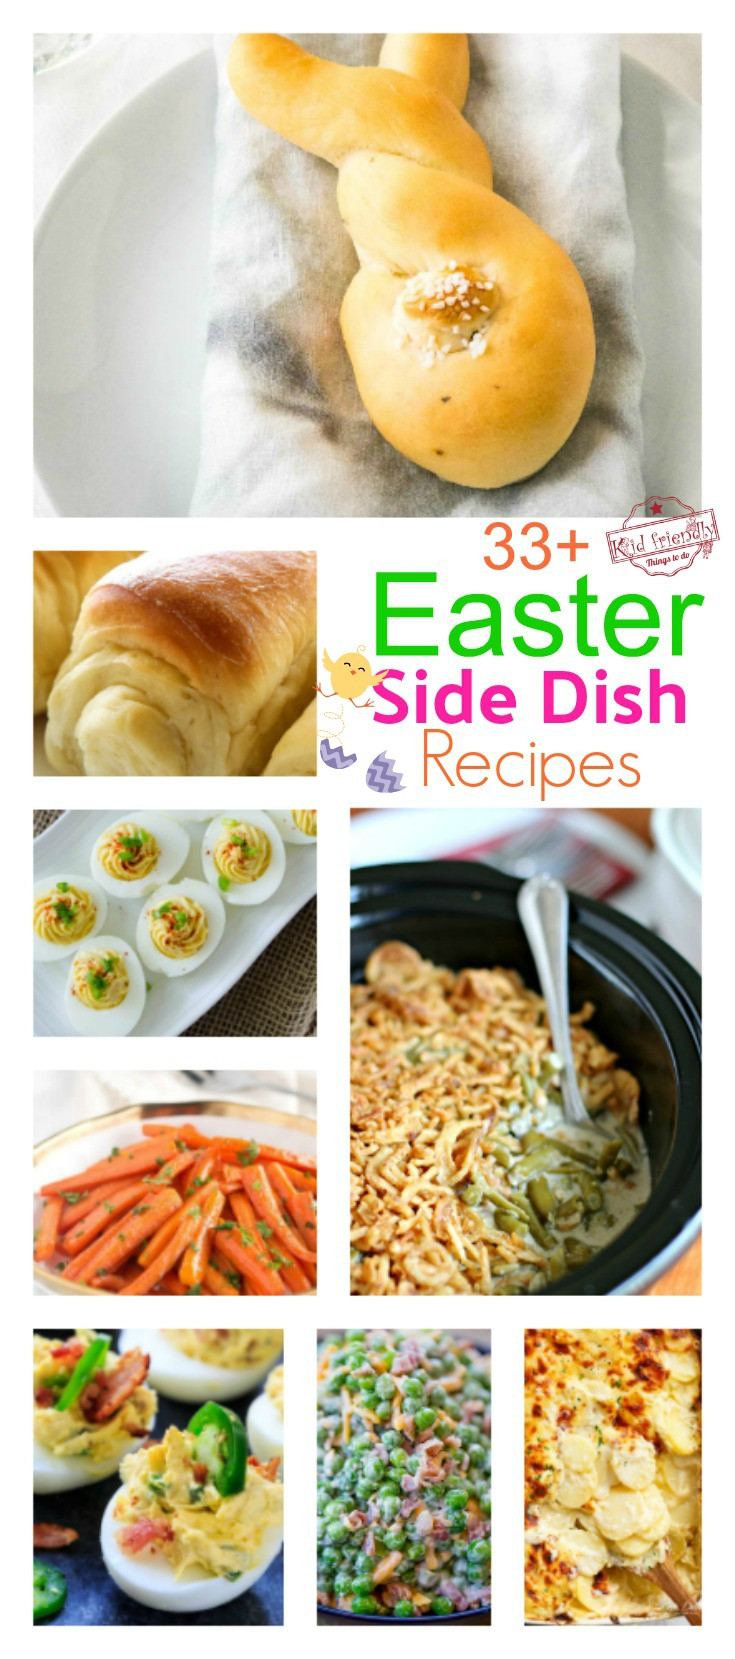 Traditional Easter Side Dishes  Over 33 Easter Side Dish Recipes for Your Celebration Dinner